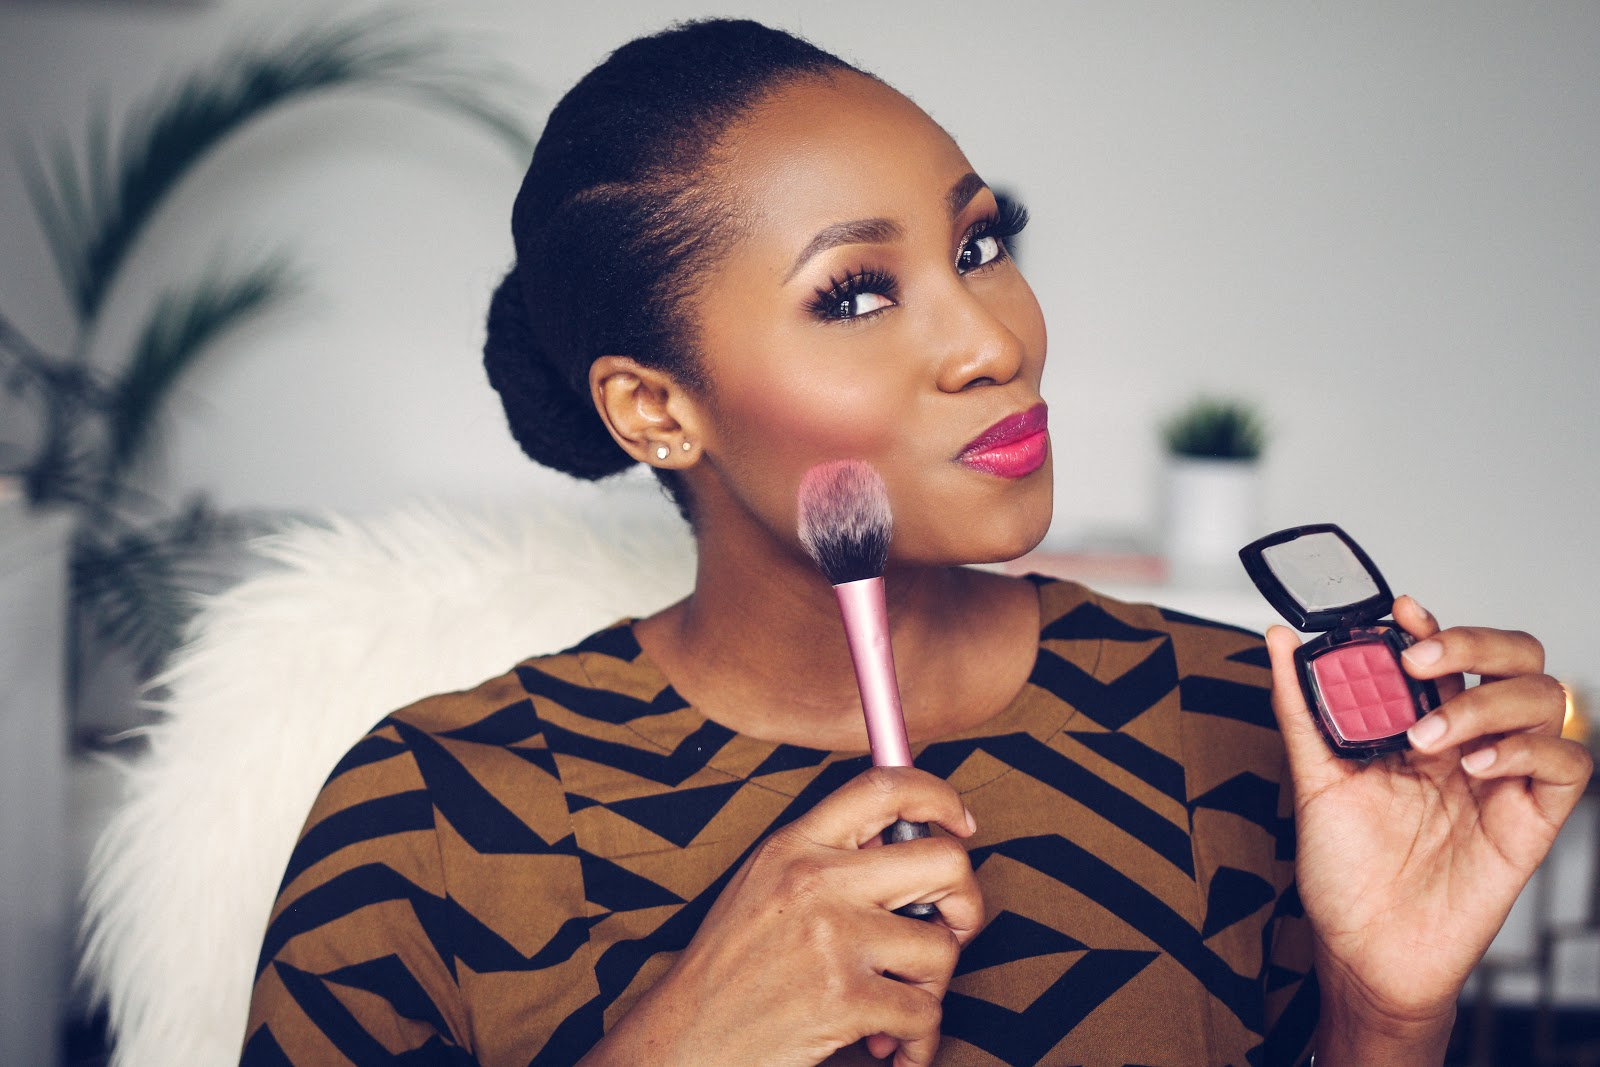 Want To Apply Foundation The Right Way? Check Out This Video